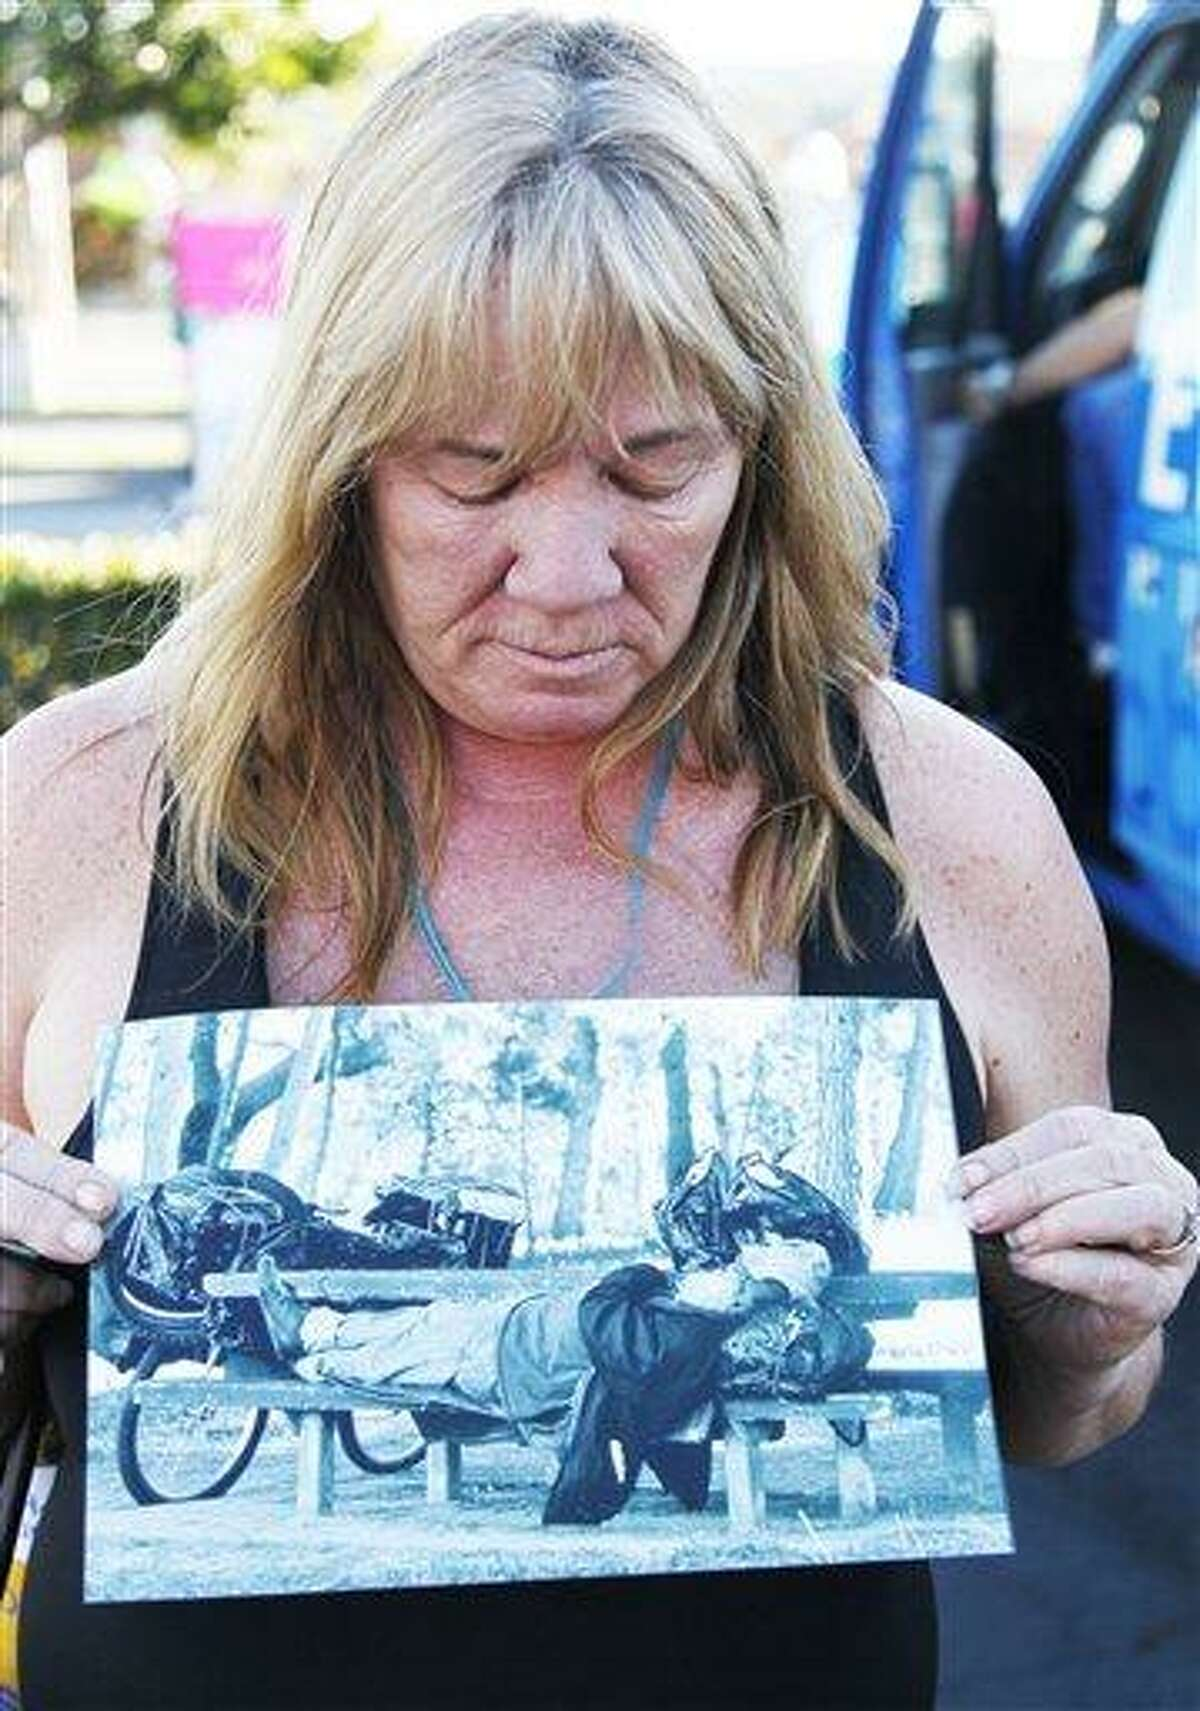 Anaheim, Calif., resident Marilyn Holland holds a photo of John Berry, 64, a Vietnam homeless veteran who was stabbed to death by a serial killer, as she pays her respects in Anaheim Wednesday. Prosecutors have charged Itzcoatl Ocampo, 23, a former Marine and a Iraq war veteran, with the murders of four homeless men in a near month-long spree that prompted police in Orange County to urge the homeless to seek shelter indoors. Associated Press